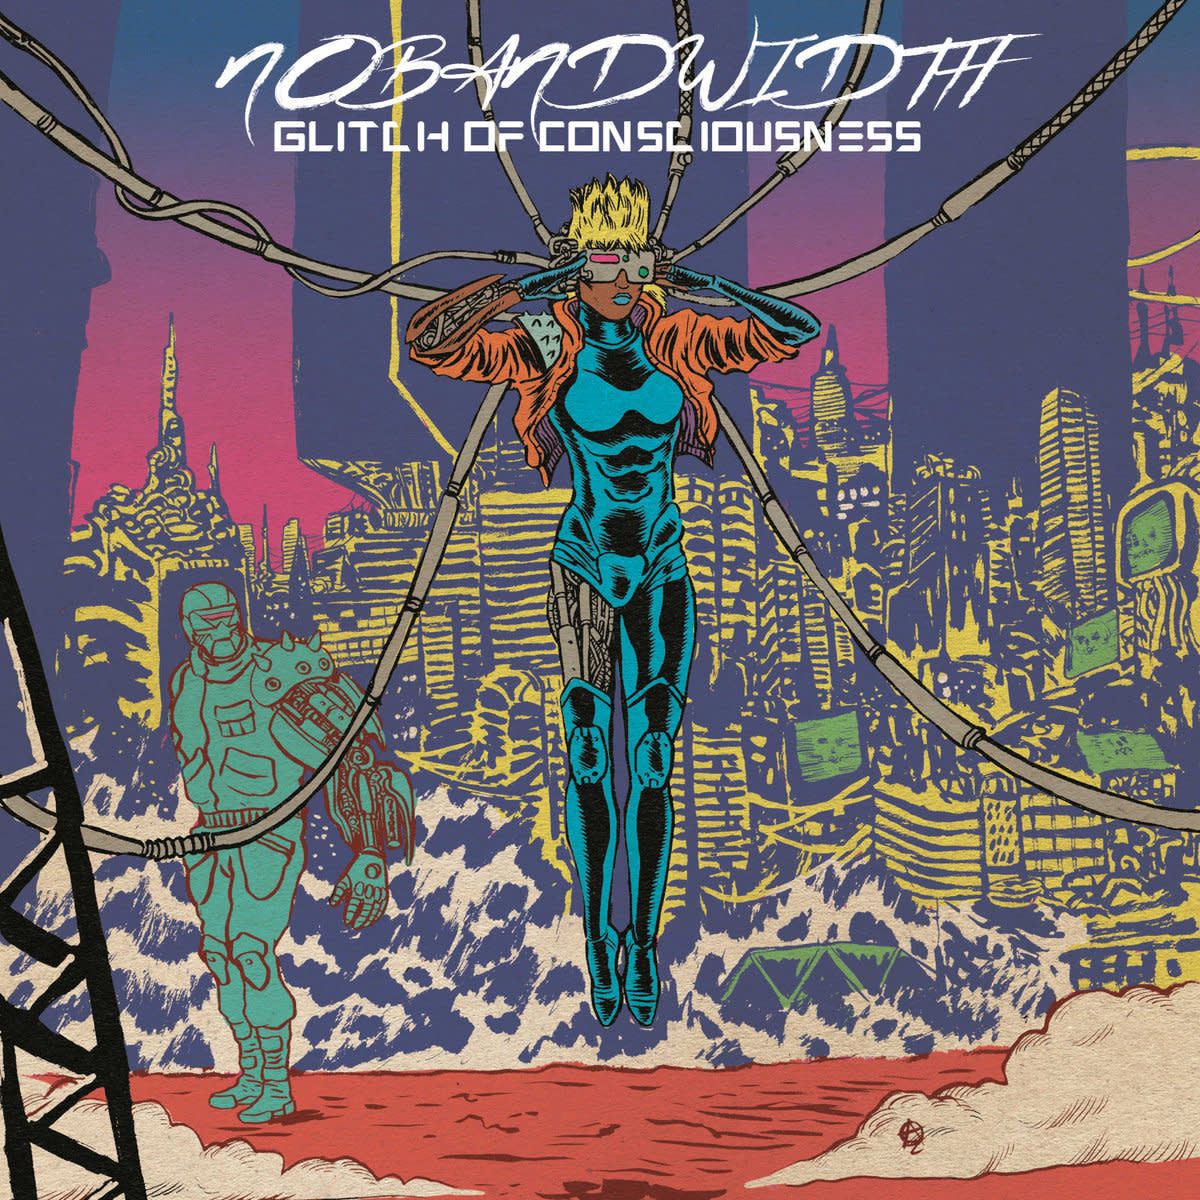 synth-album-review-glitch-of-consciousness-by-nobandwidth